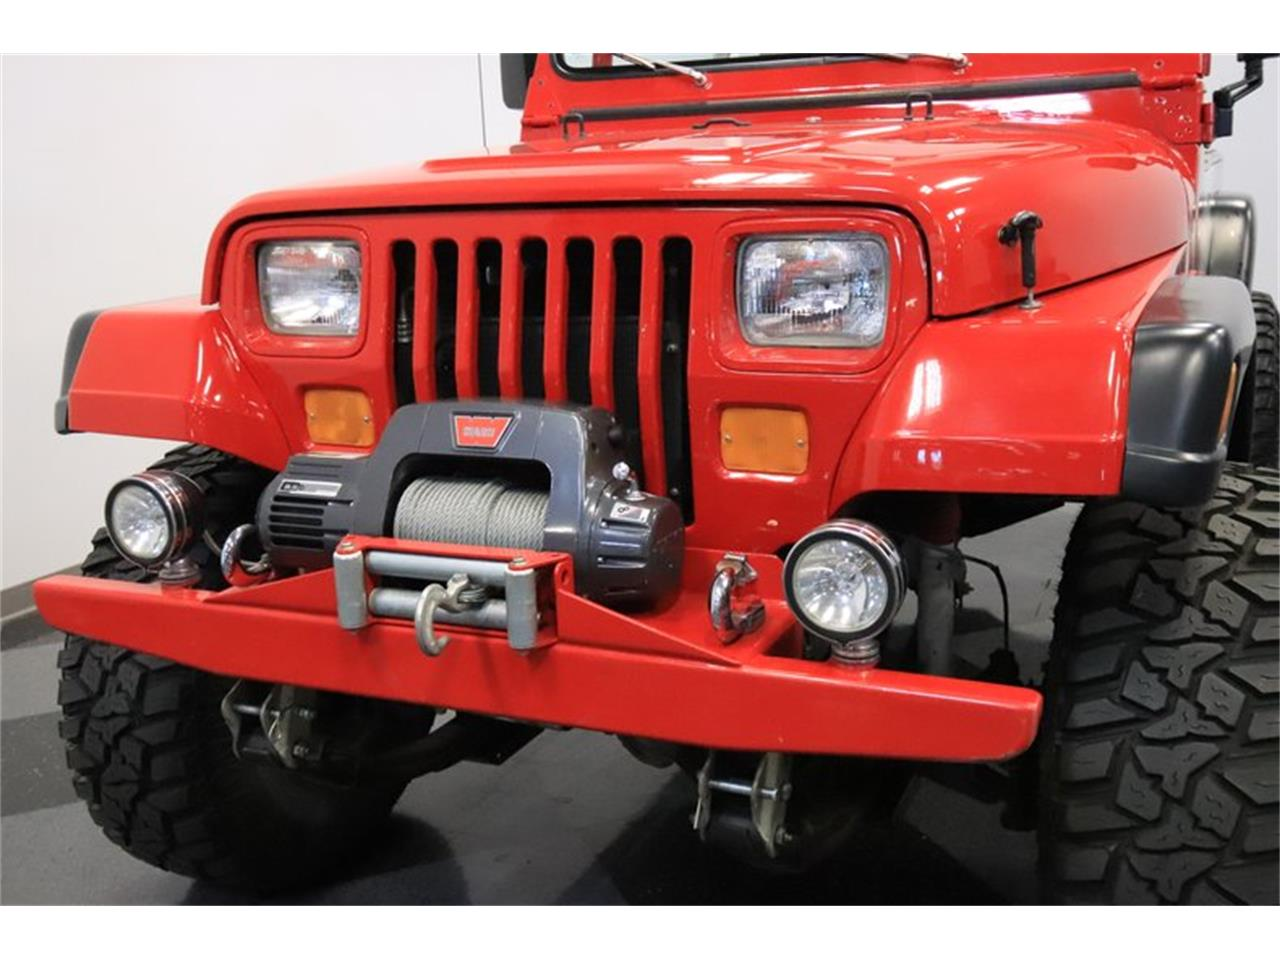 Large Picture of '83 CJ8 Scrambler Offered by Streetside Classics - Phoenix - Q5HM